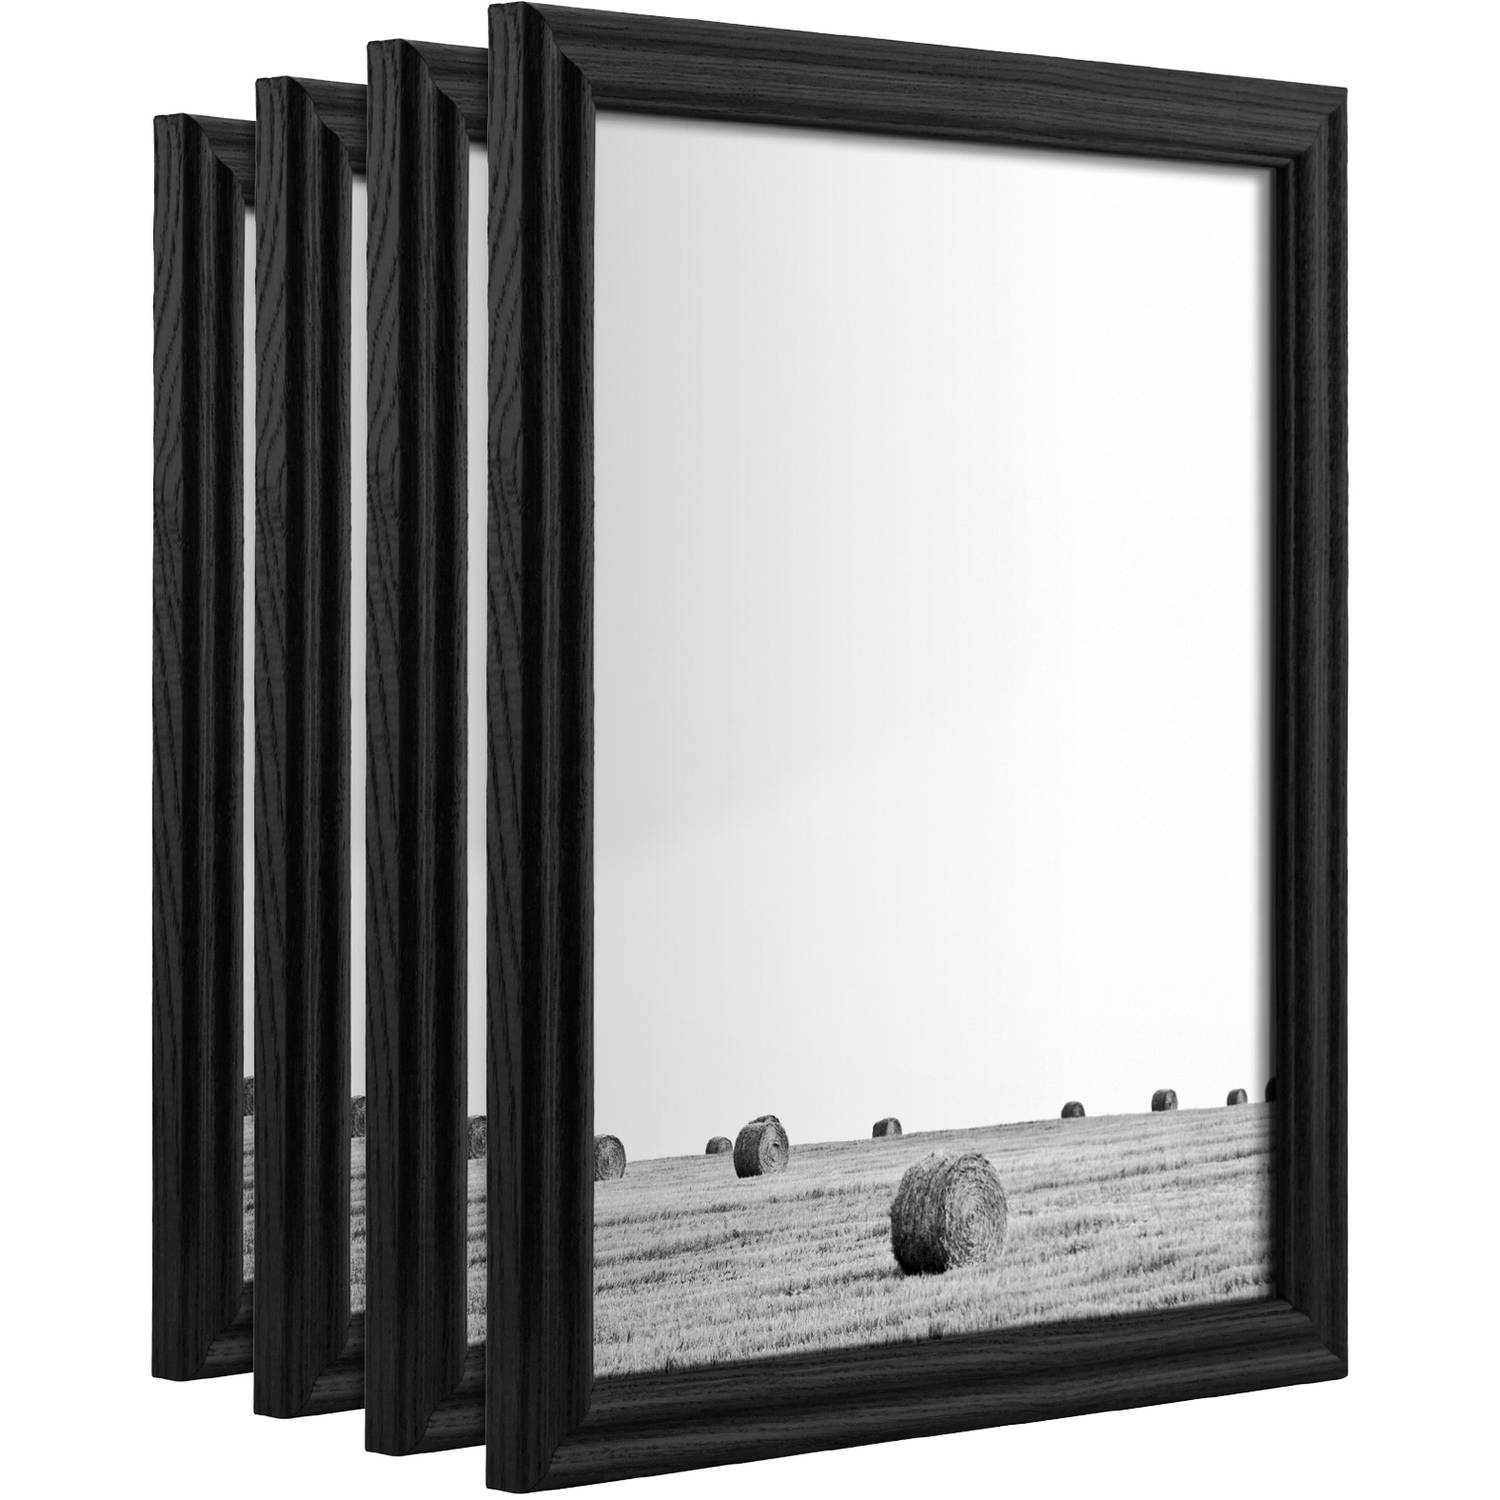 Craig Frames Inc. Craig Frames Biltmore Ash Traditional Black Hardwood Picture Frame, Set of 4